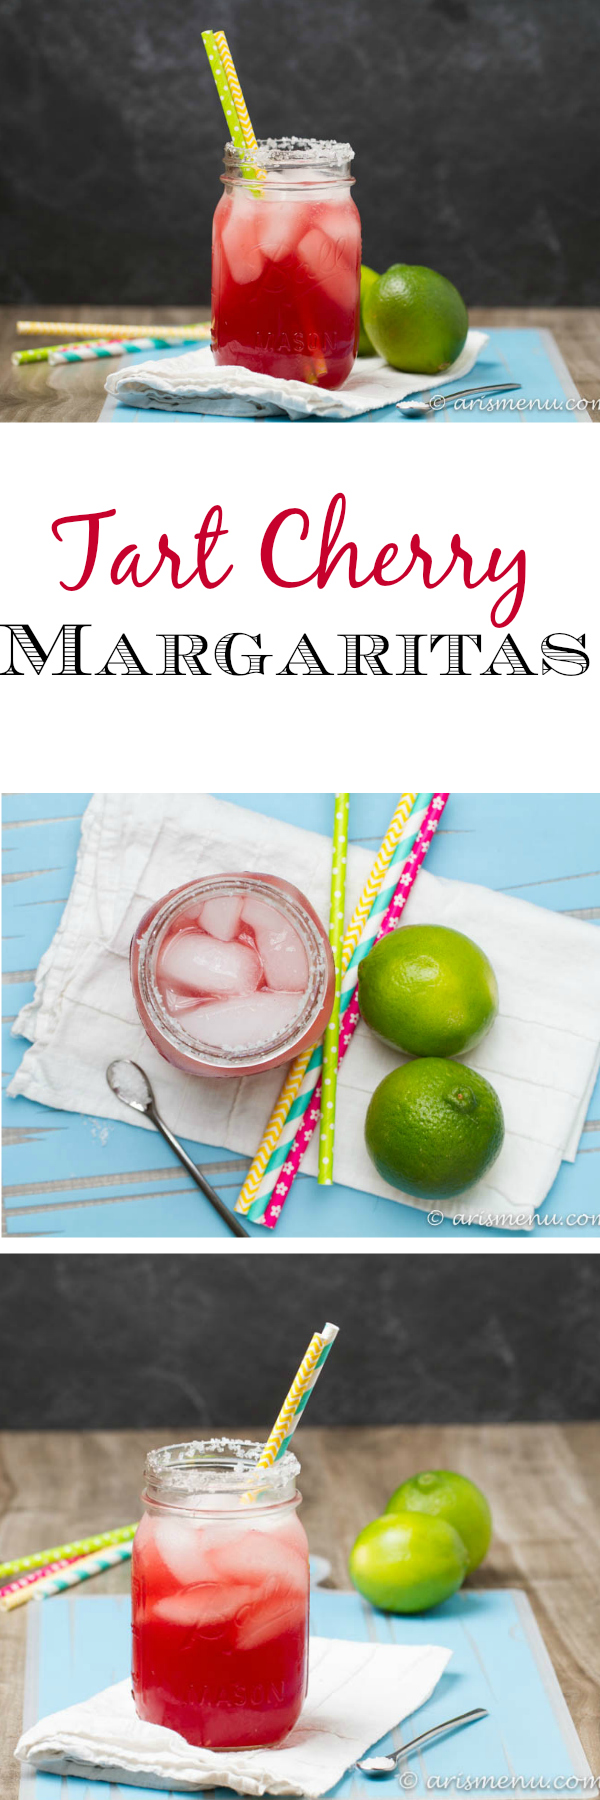 Tart Cherry Margaritas: The perfect, refreshing margarita--lightly sweet with a punch of tequila